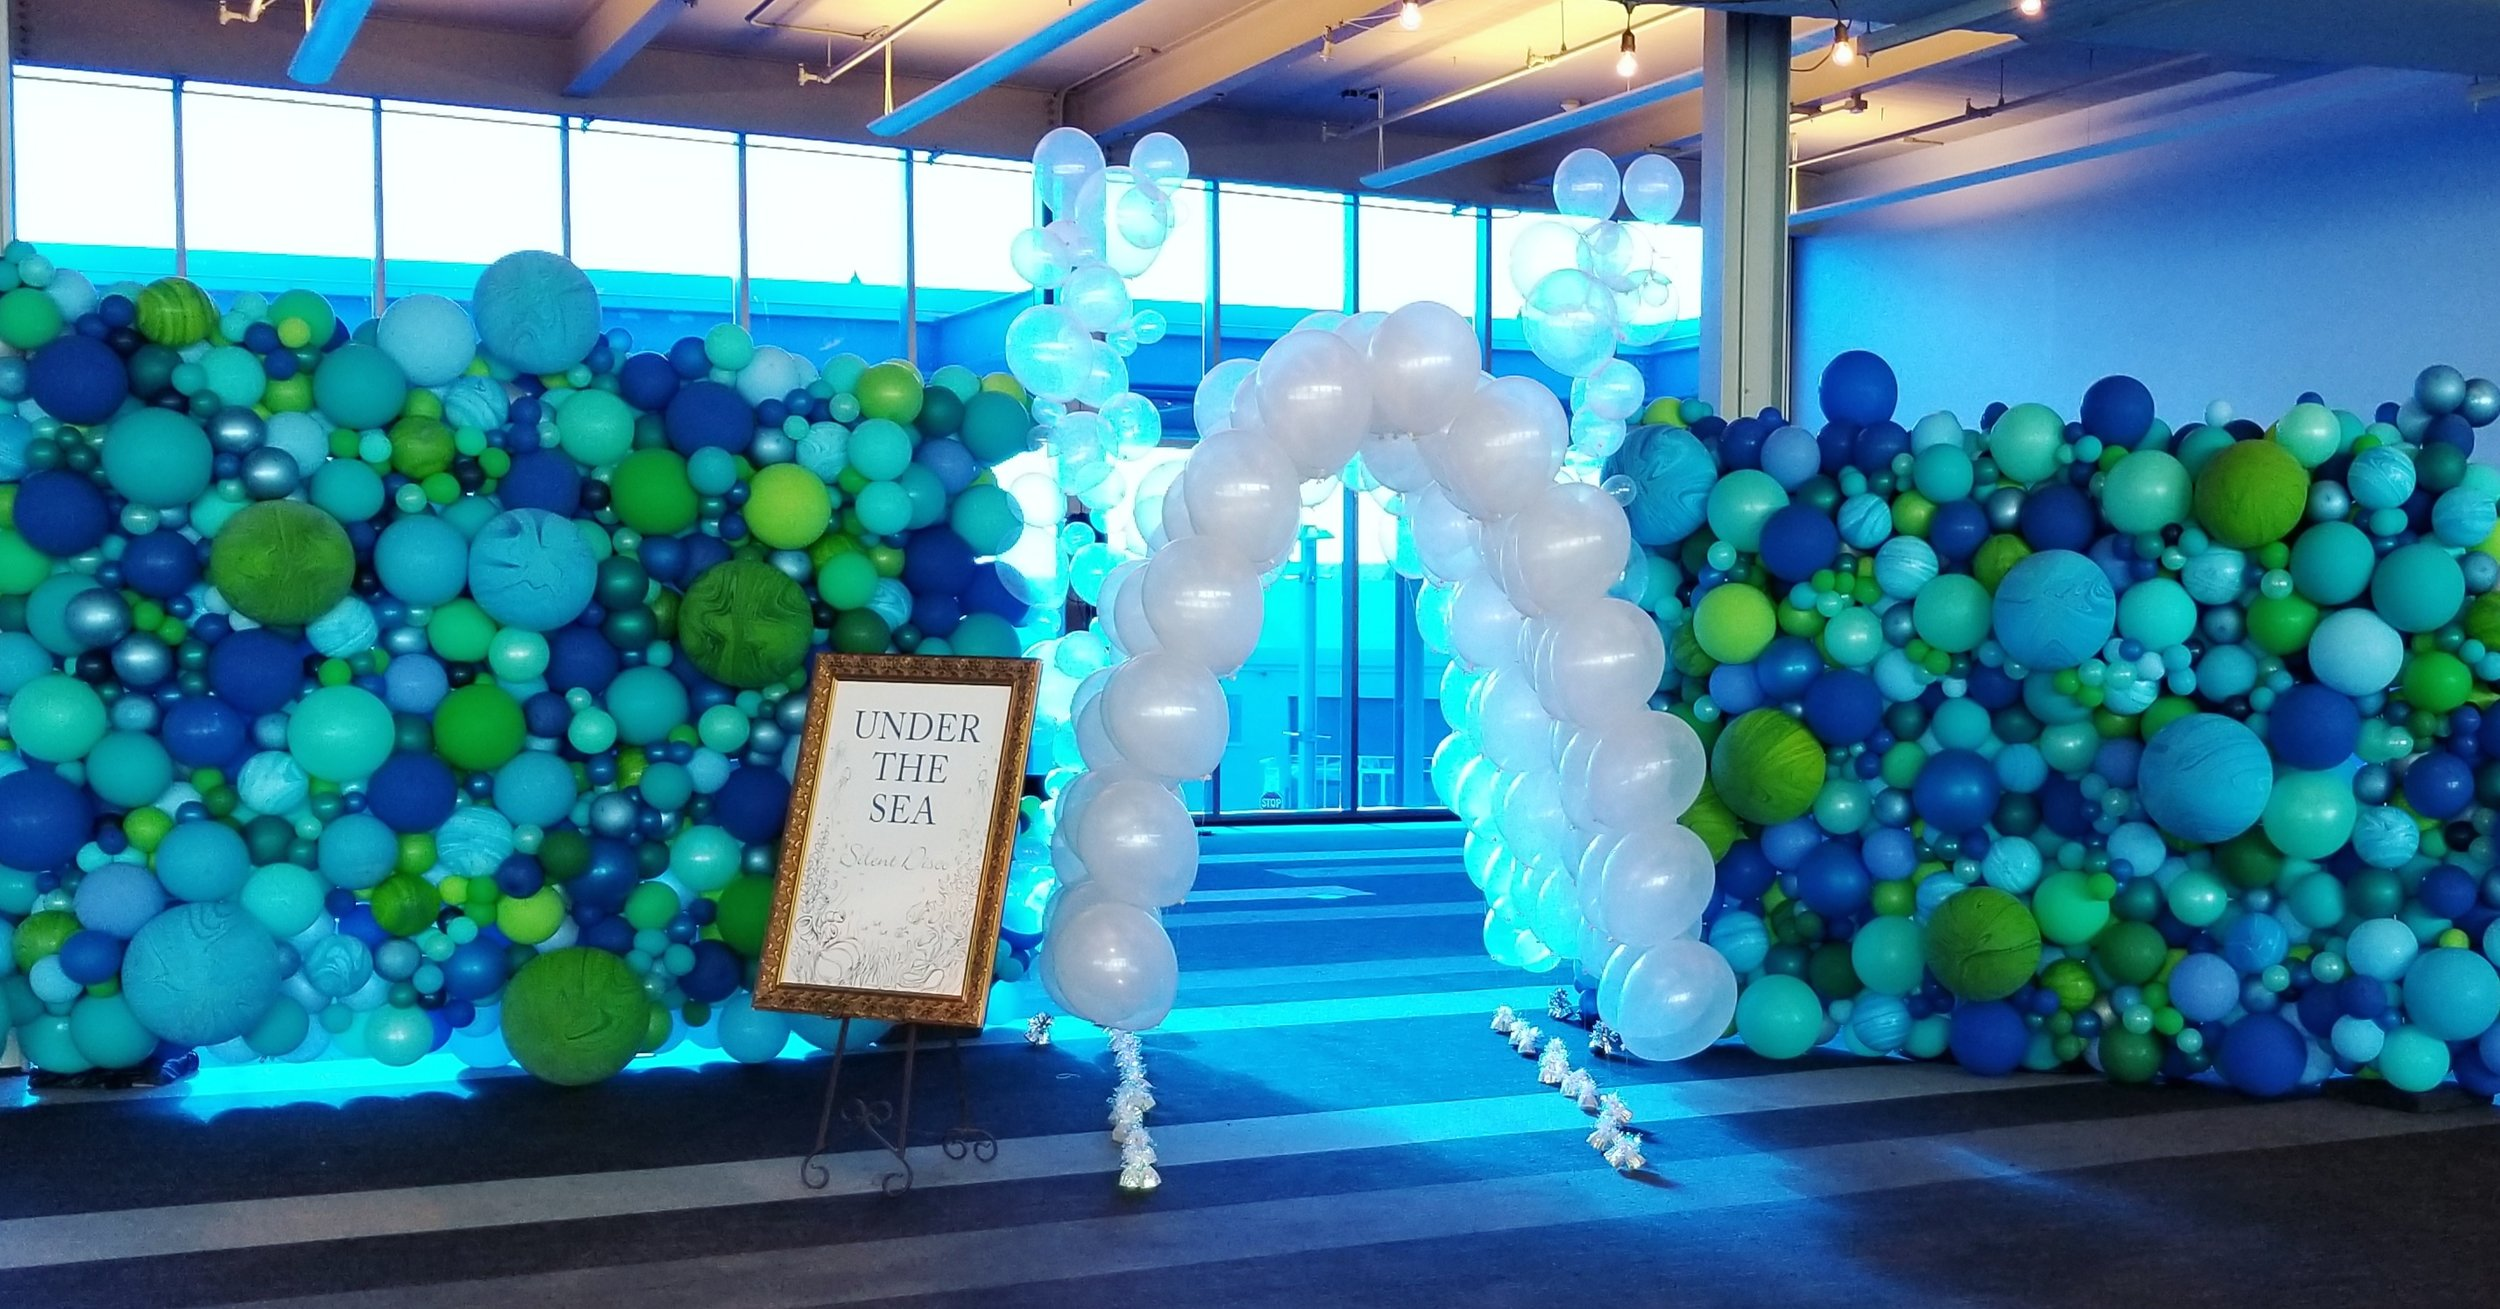 Balloon Tunnel with Organic Balloon Walls. Balloon Installation Art - Zim Balloons.jpg